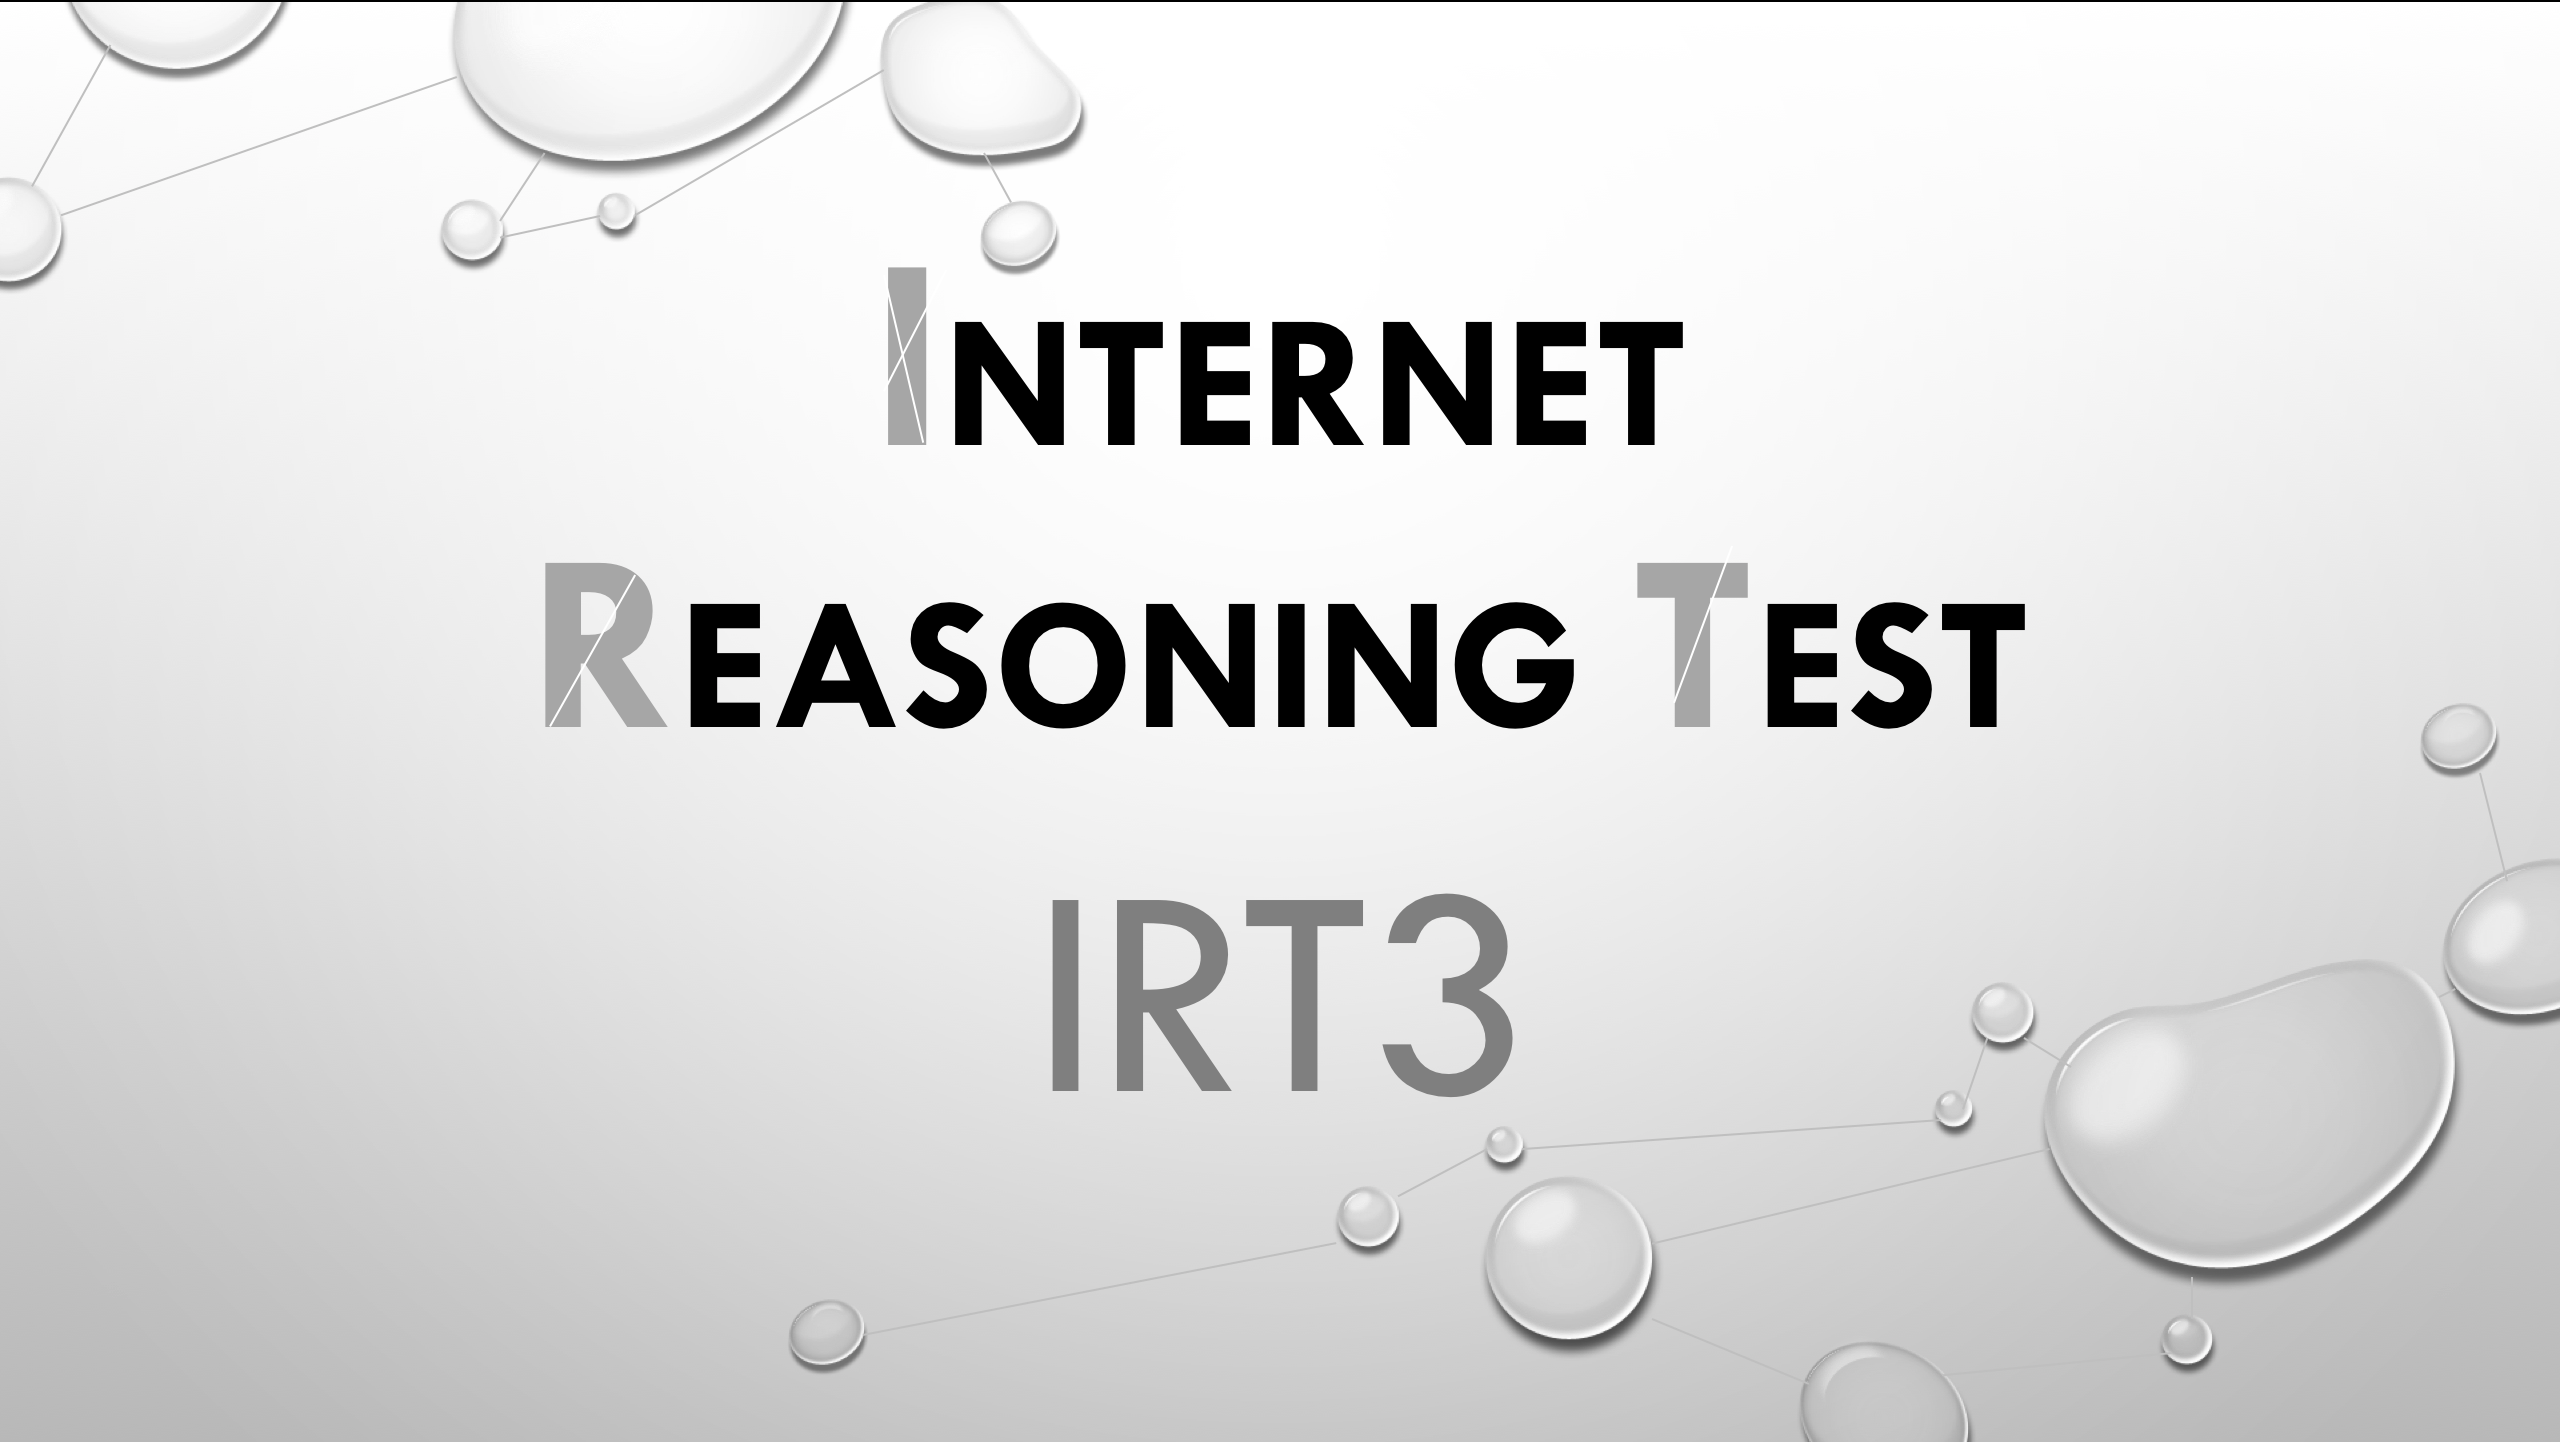 Internet Reasoning Test IRT 3